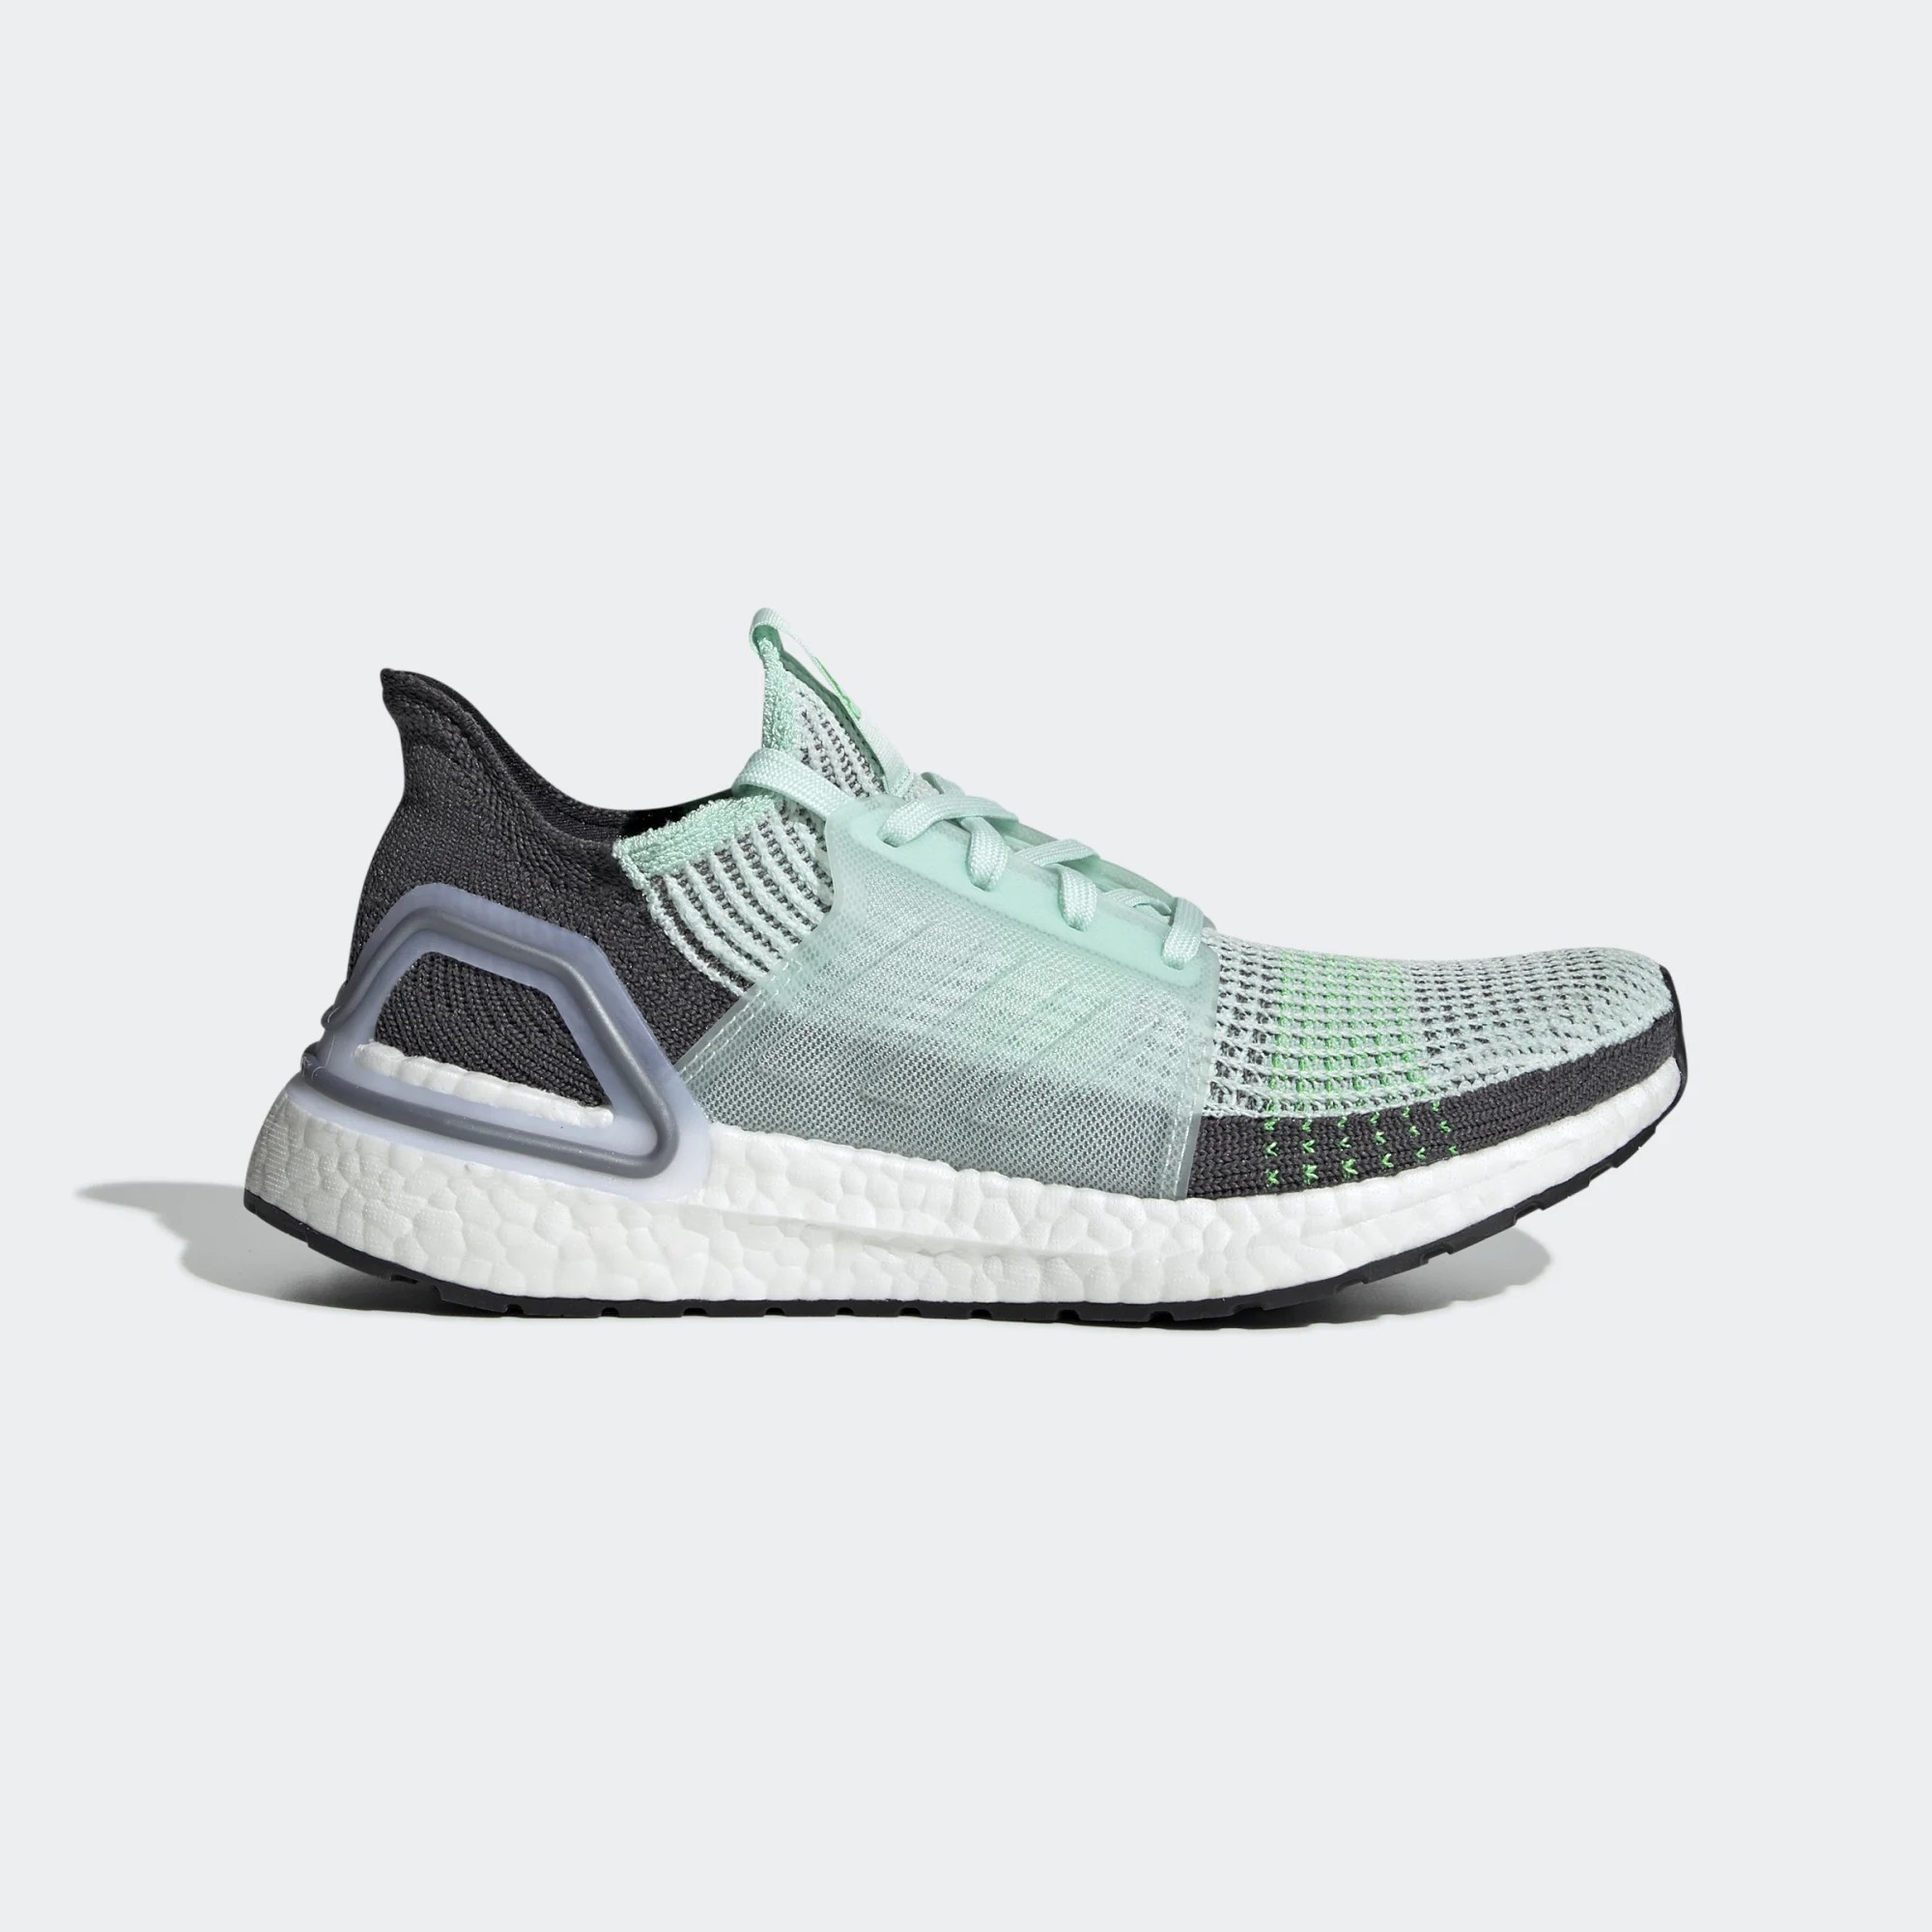 "Wmns UltraBoost 19 ""Ice Mint"" adidas F35285"